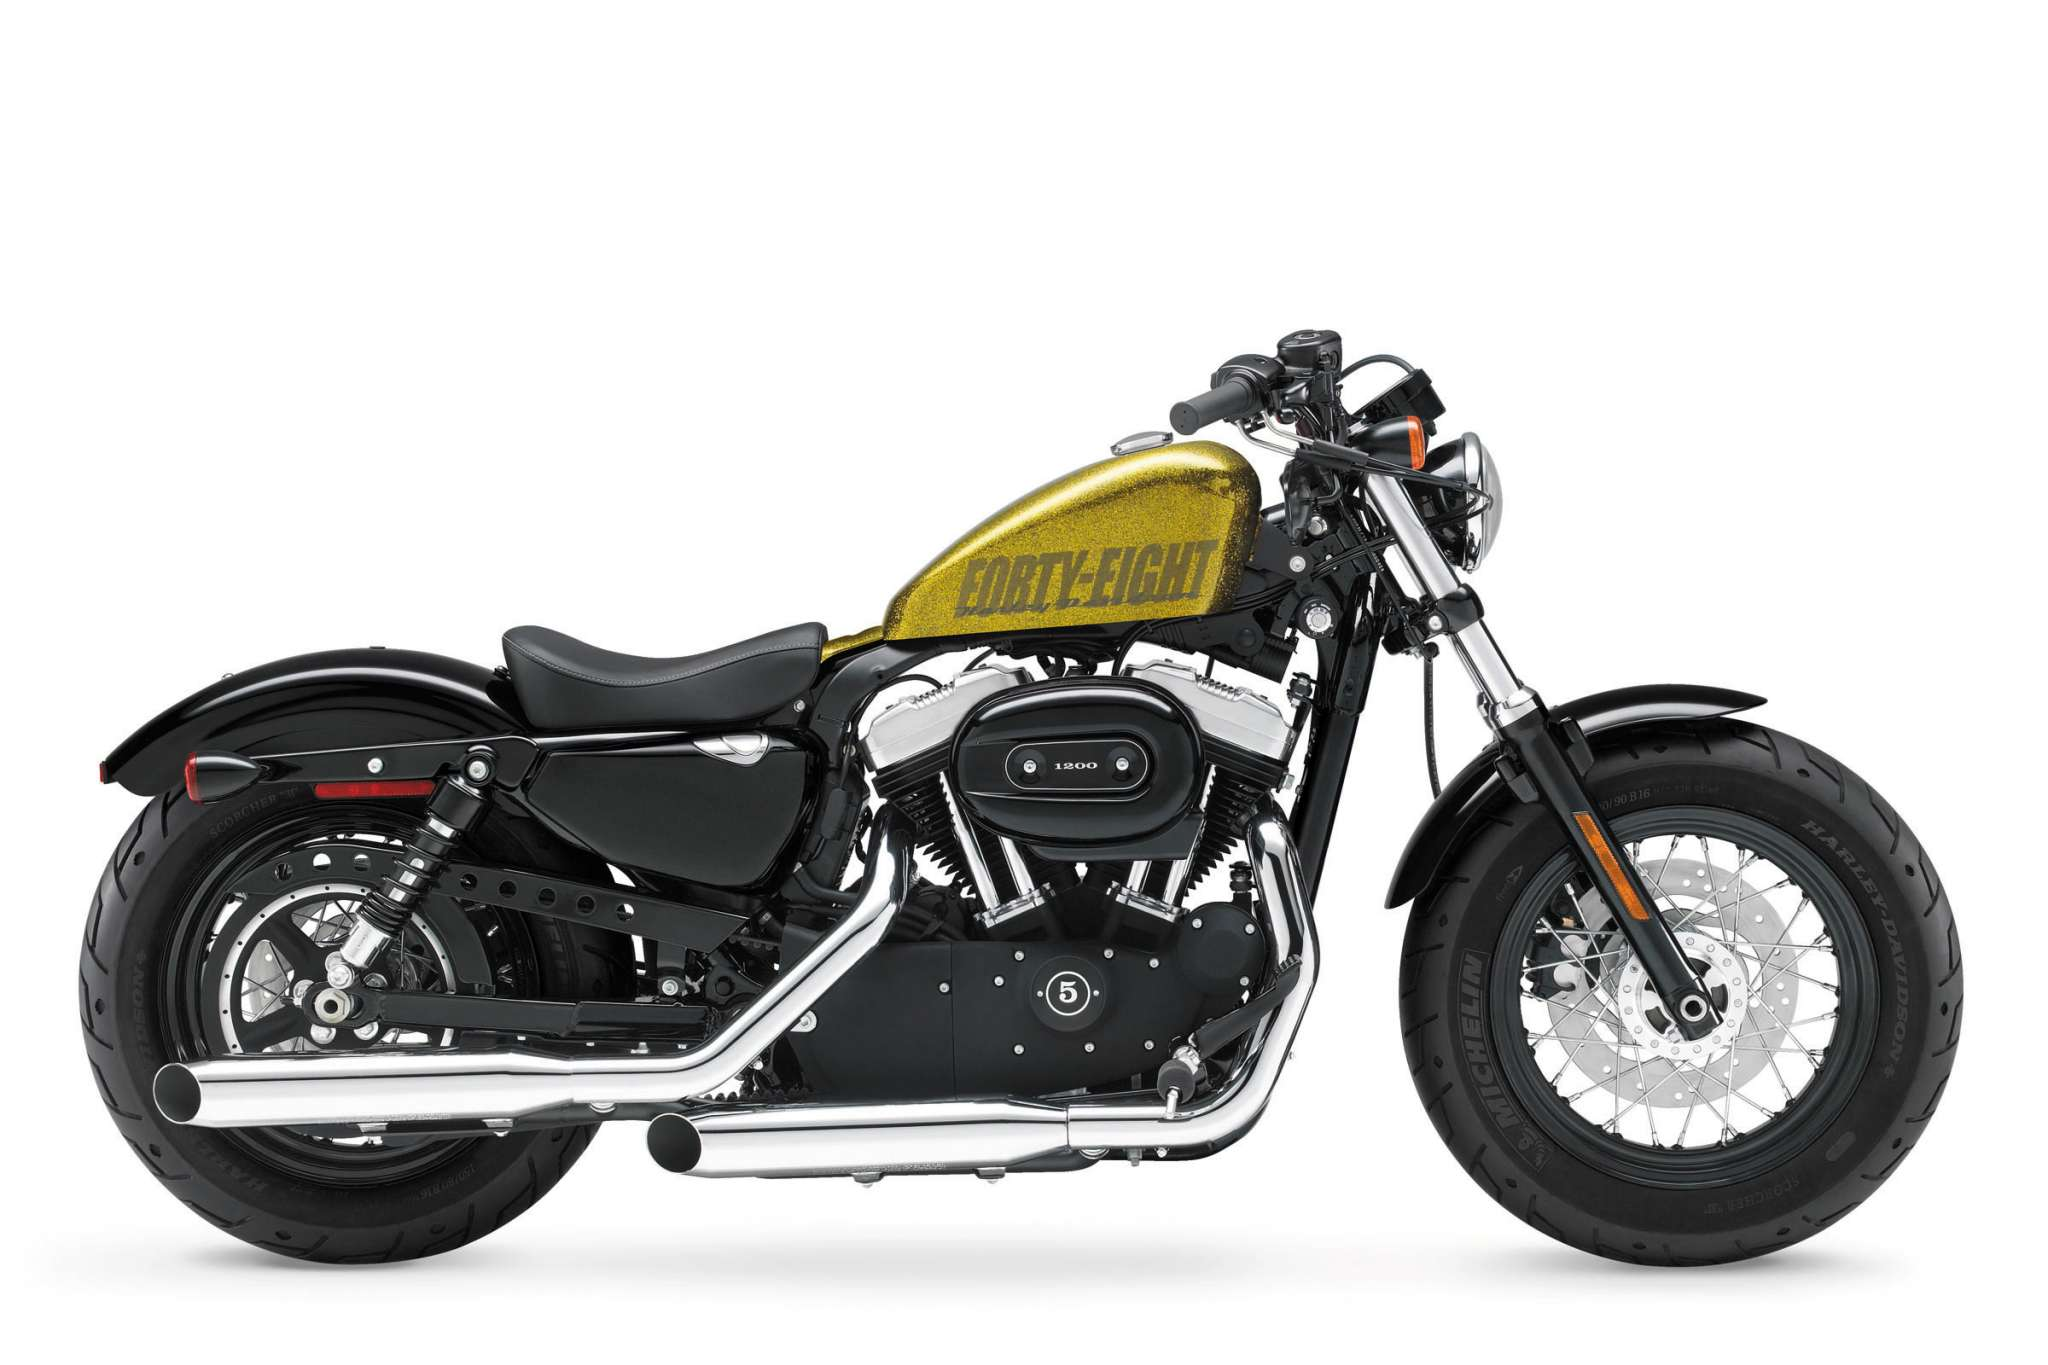 2013 Harley-Davidson XL1200X Forty-Eight 48 Review